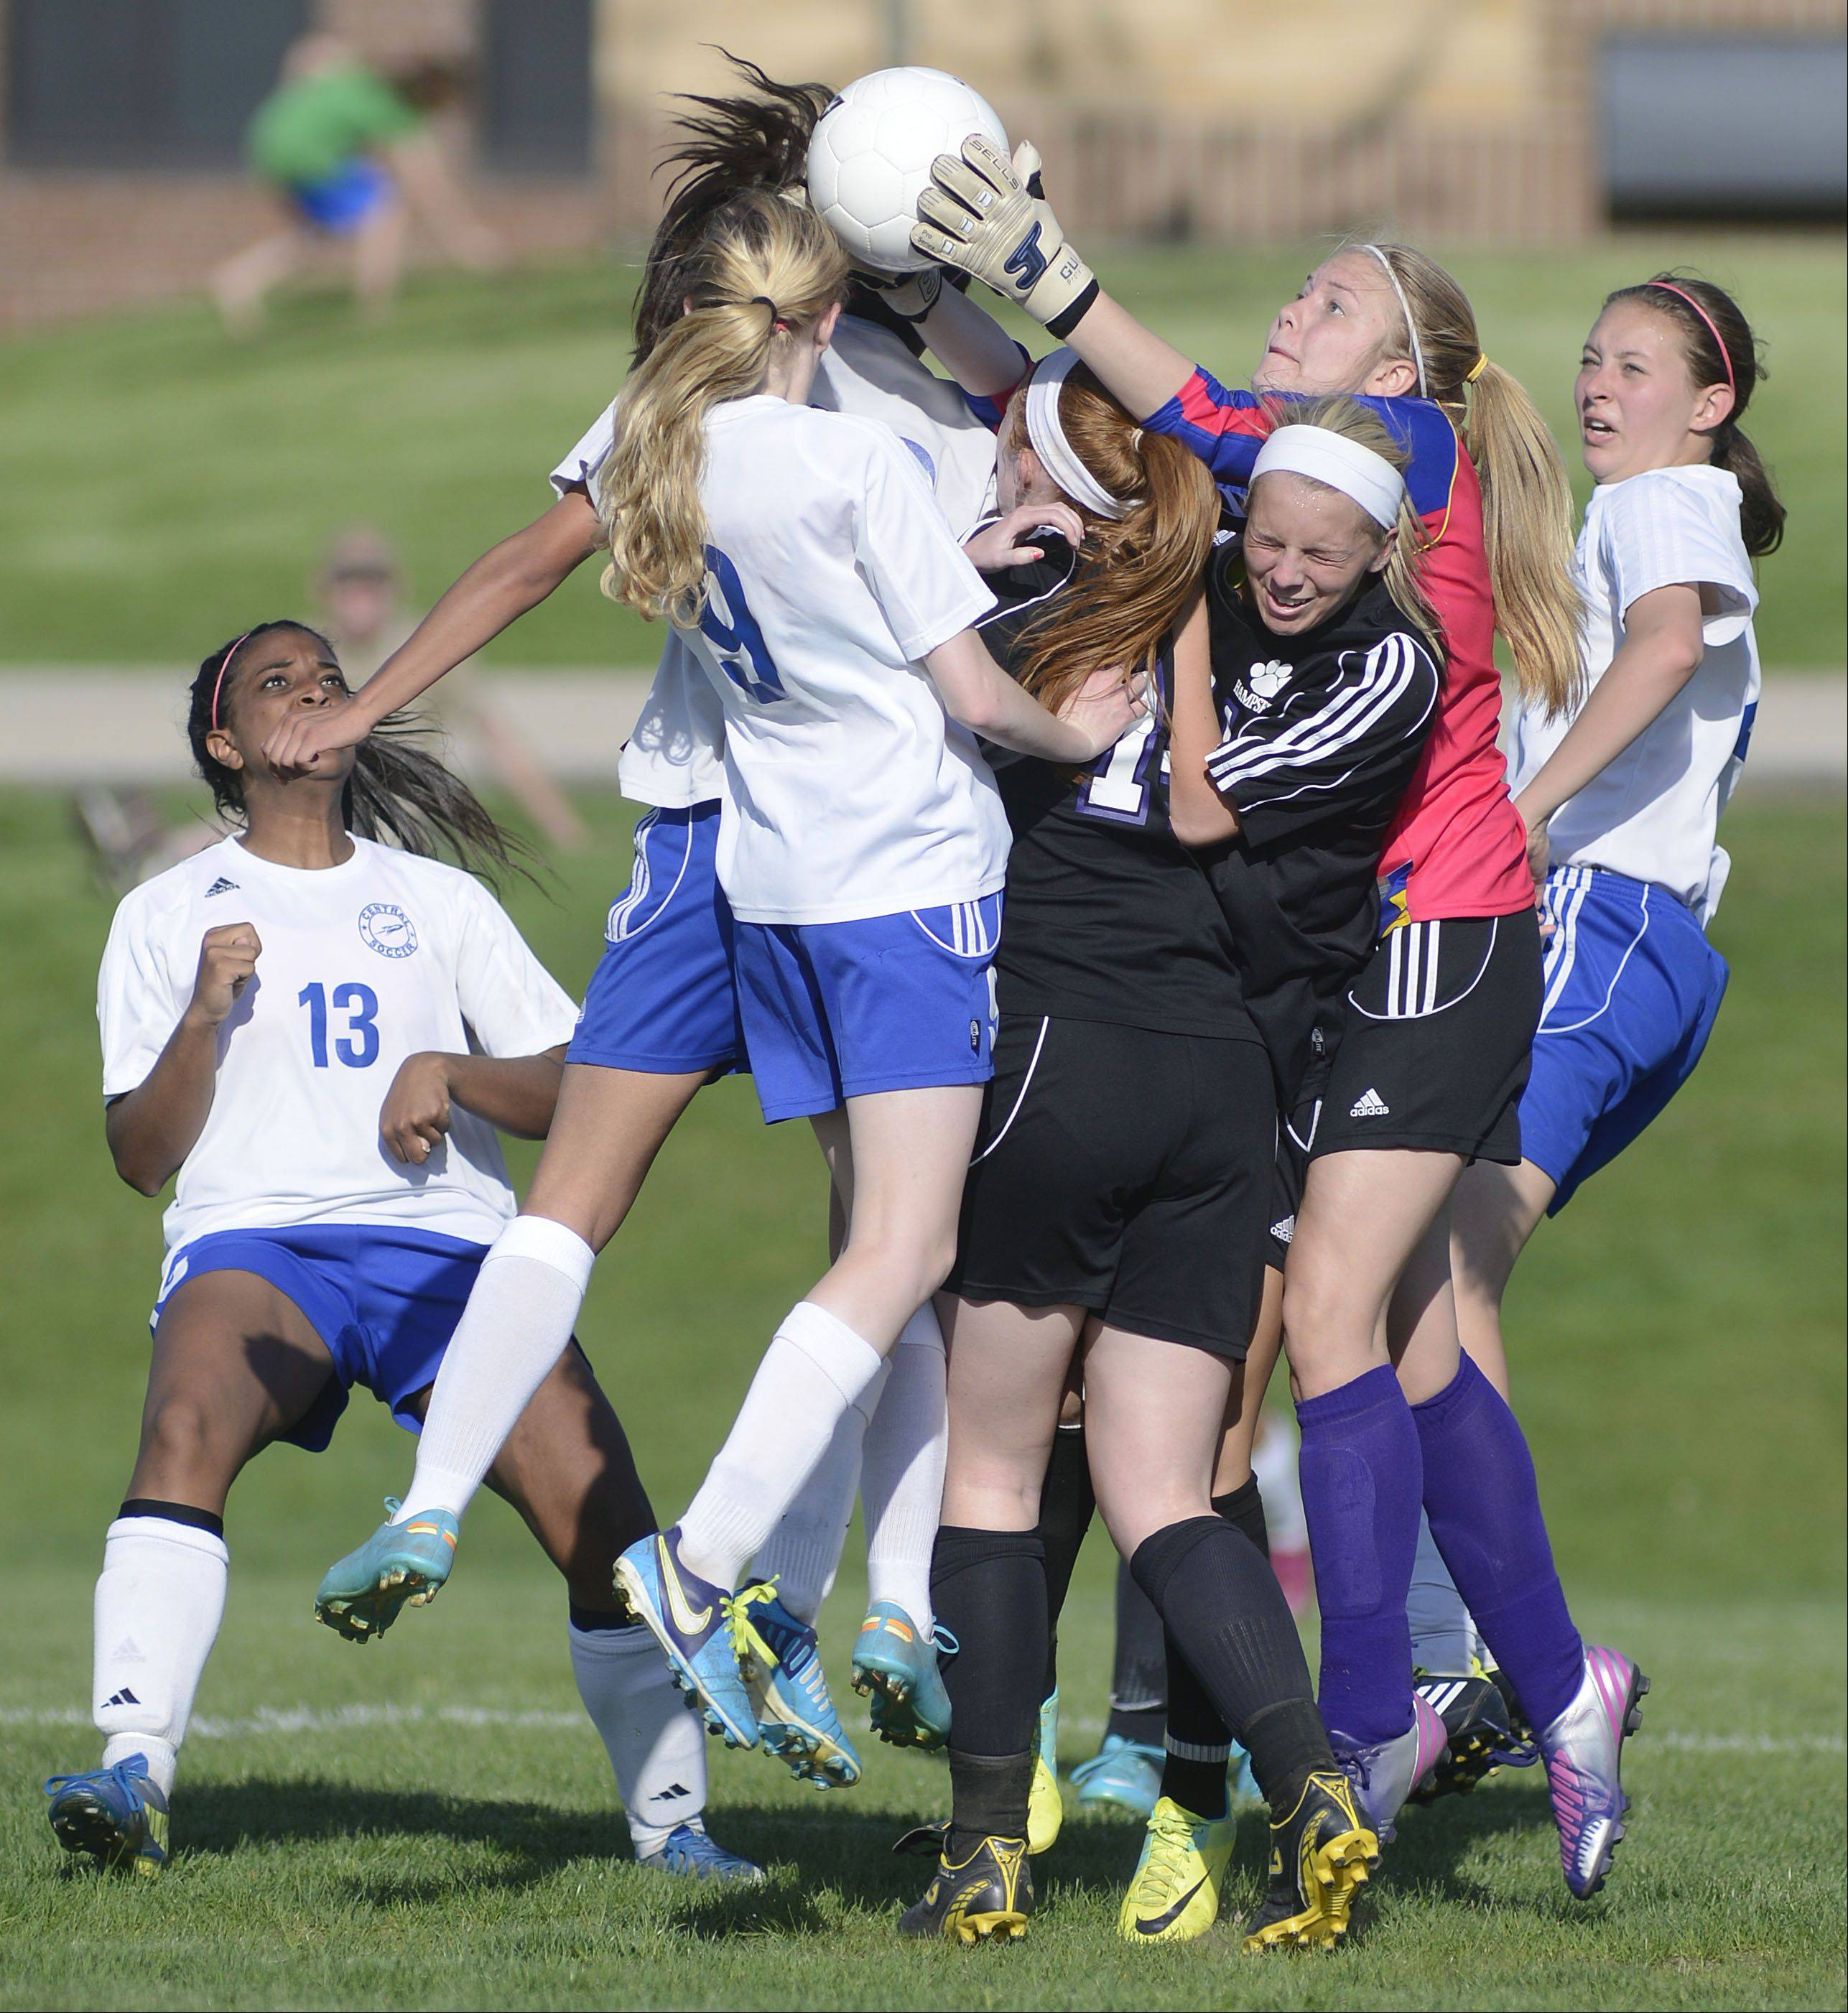 Burlington Central's Cali Andrew, 9, collides with Hampshire's Jessica Boutin and Paige Palubicki as Hampshire goalie Arianna Rominski leaps for the ball during Tuesday's Class 2A regional soccer semifinal.